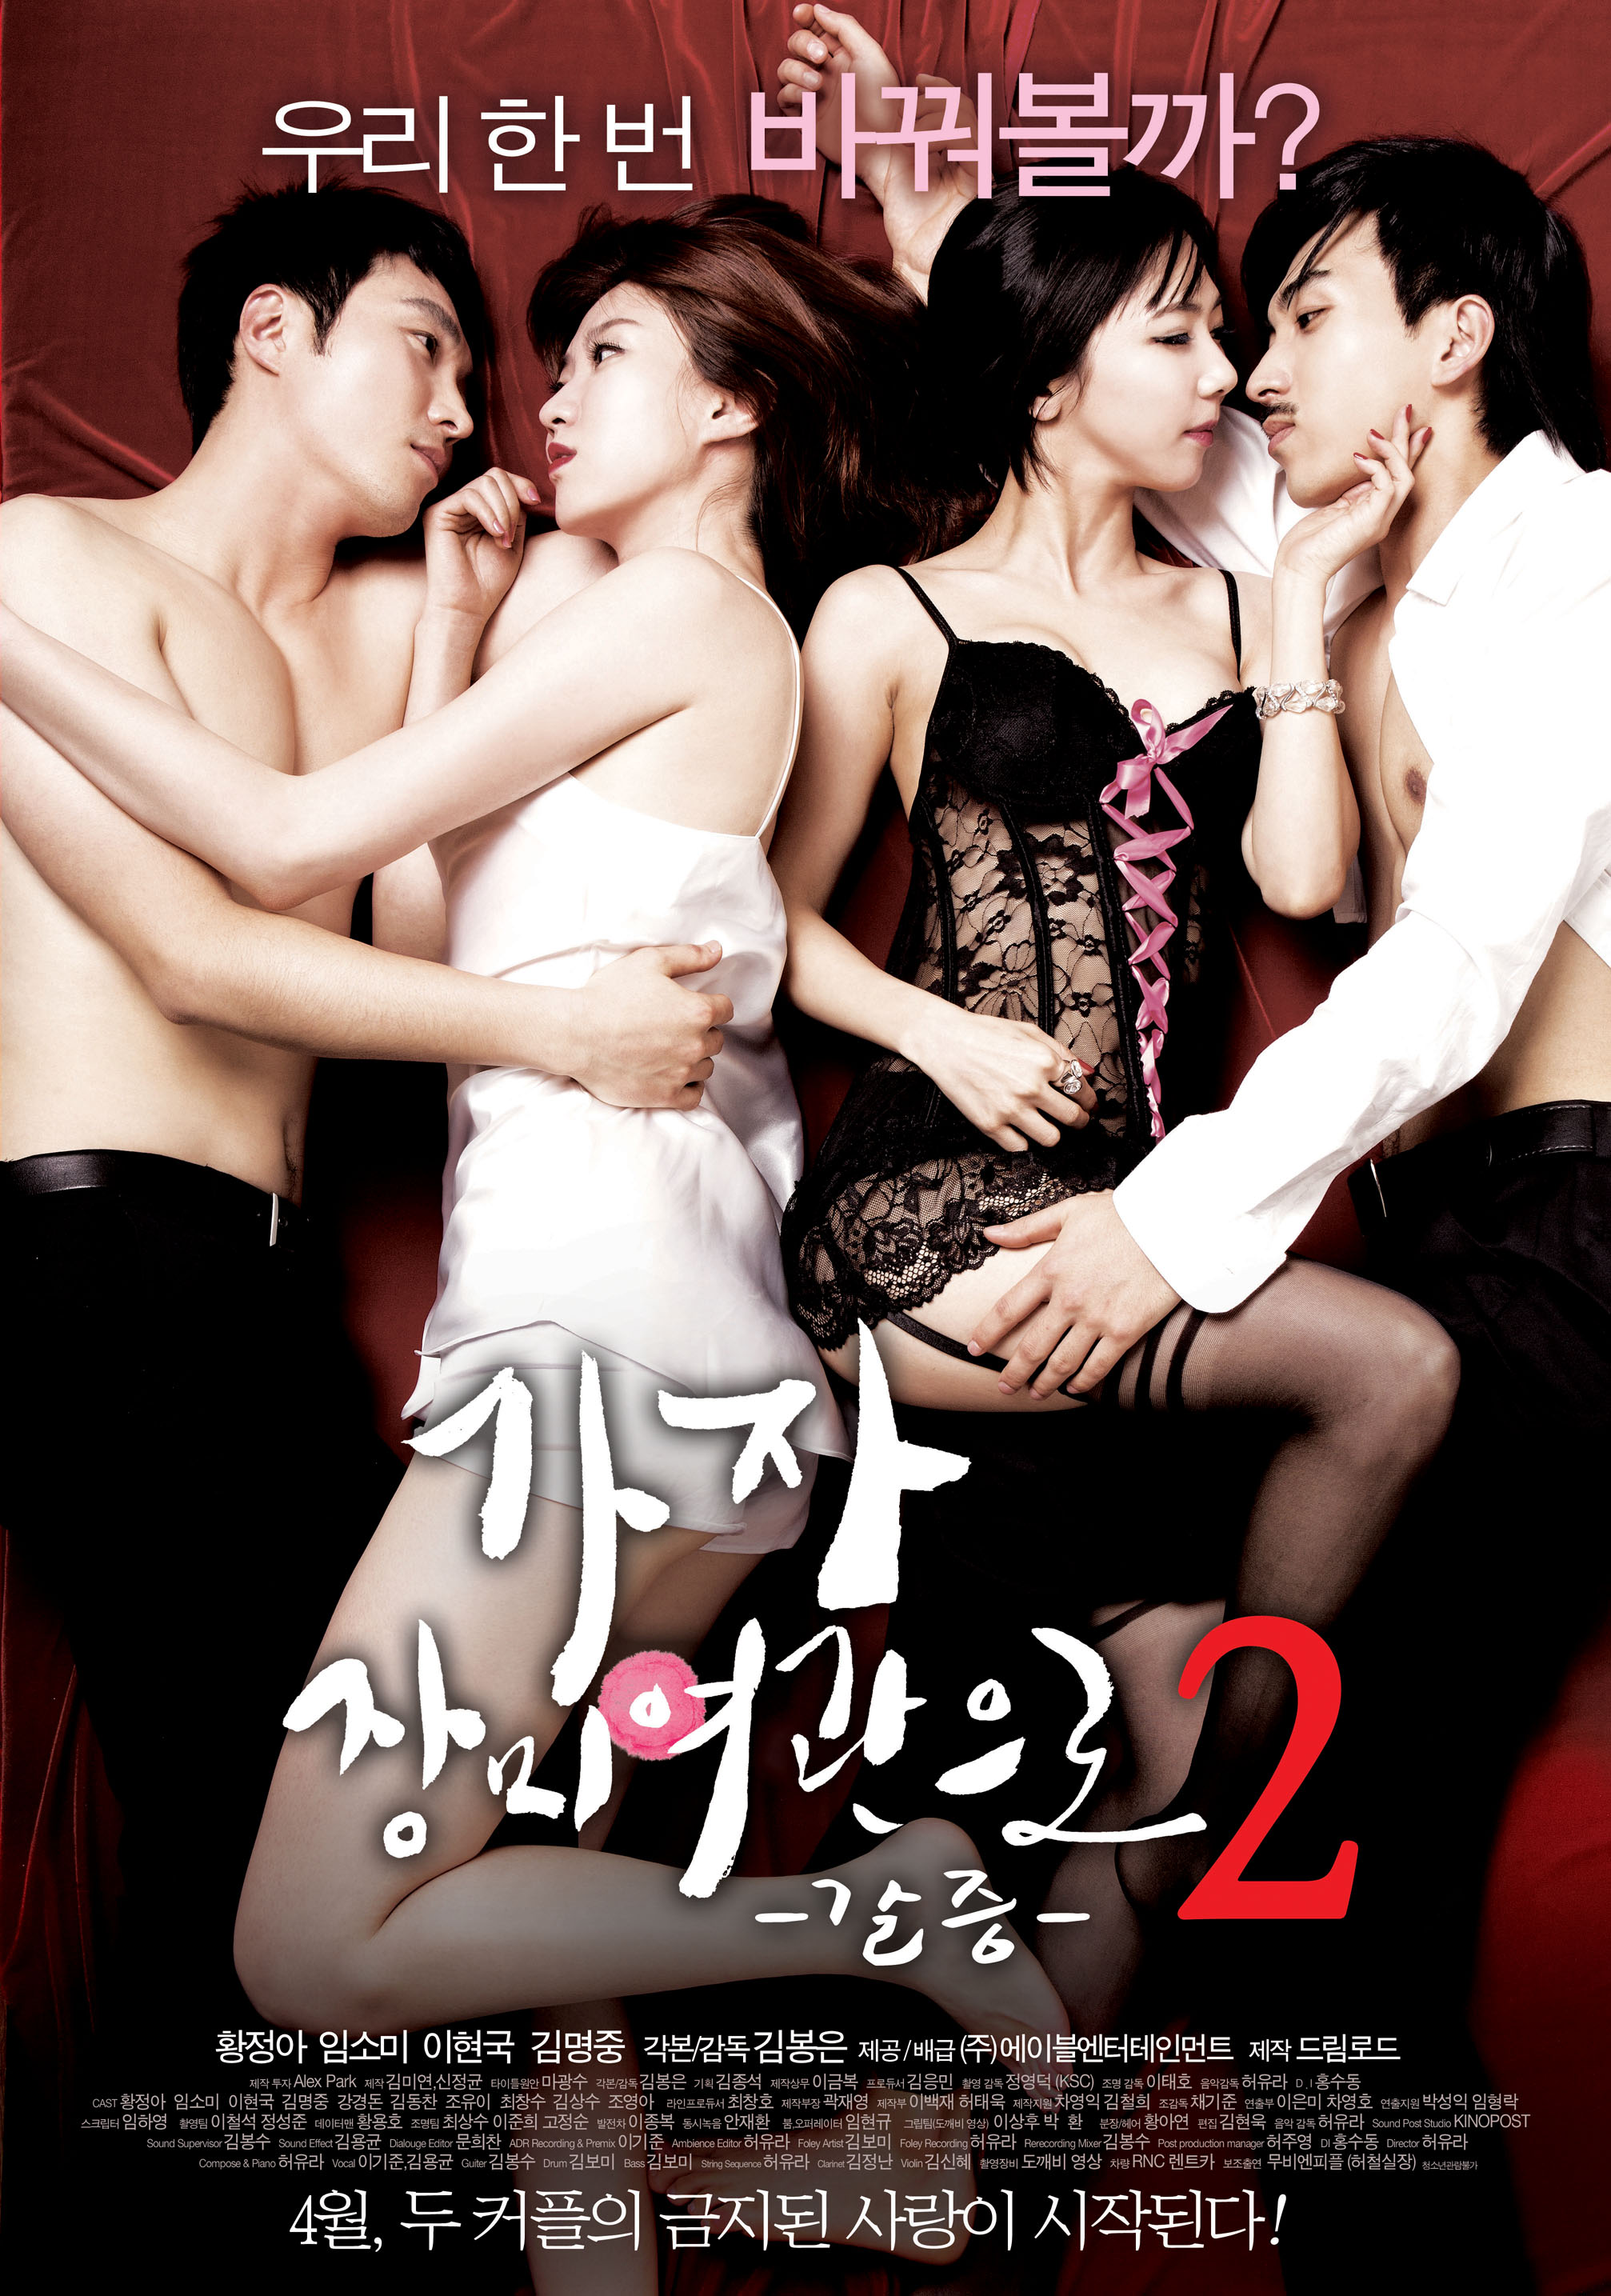 Free Download Film Korea The Intimate Lover - litemiss